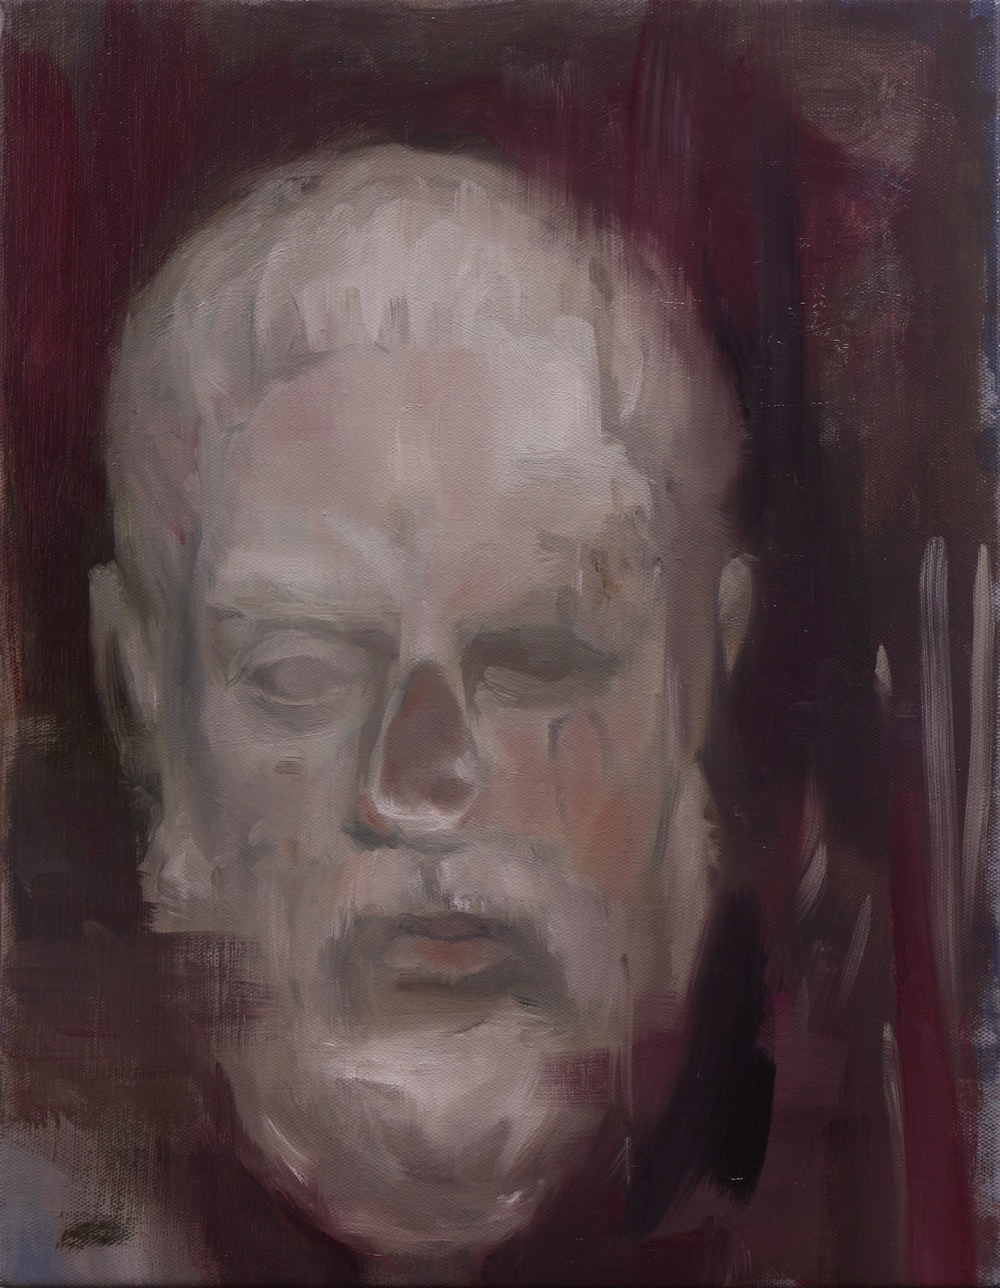 The Example, Oil on linen, 50 x 40cm, 2015